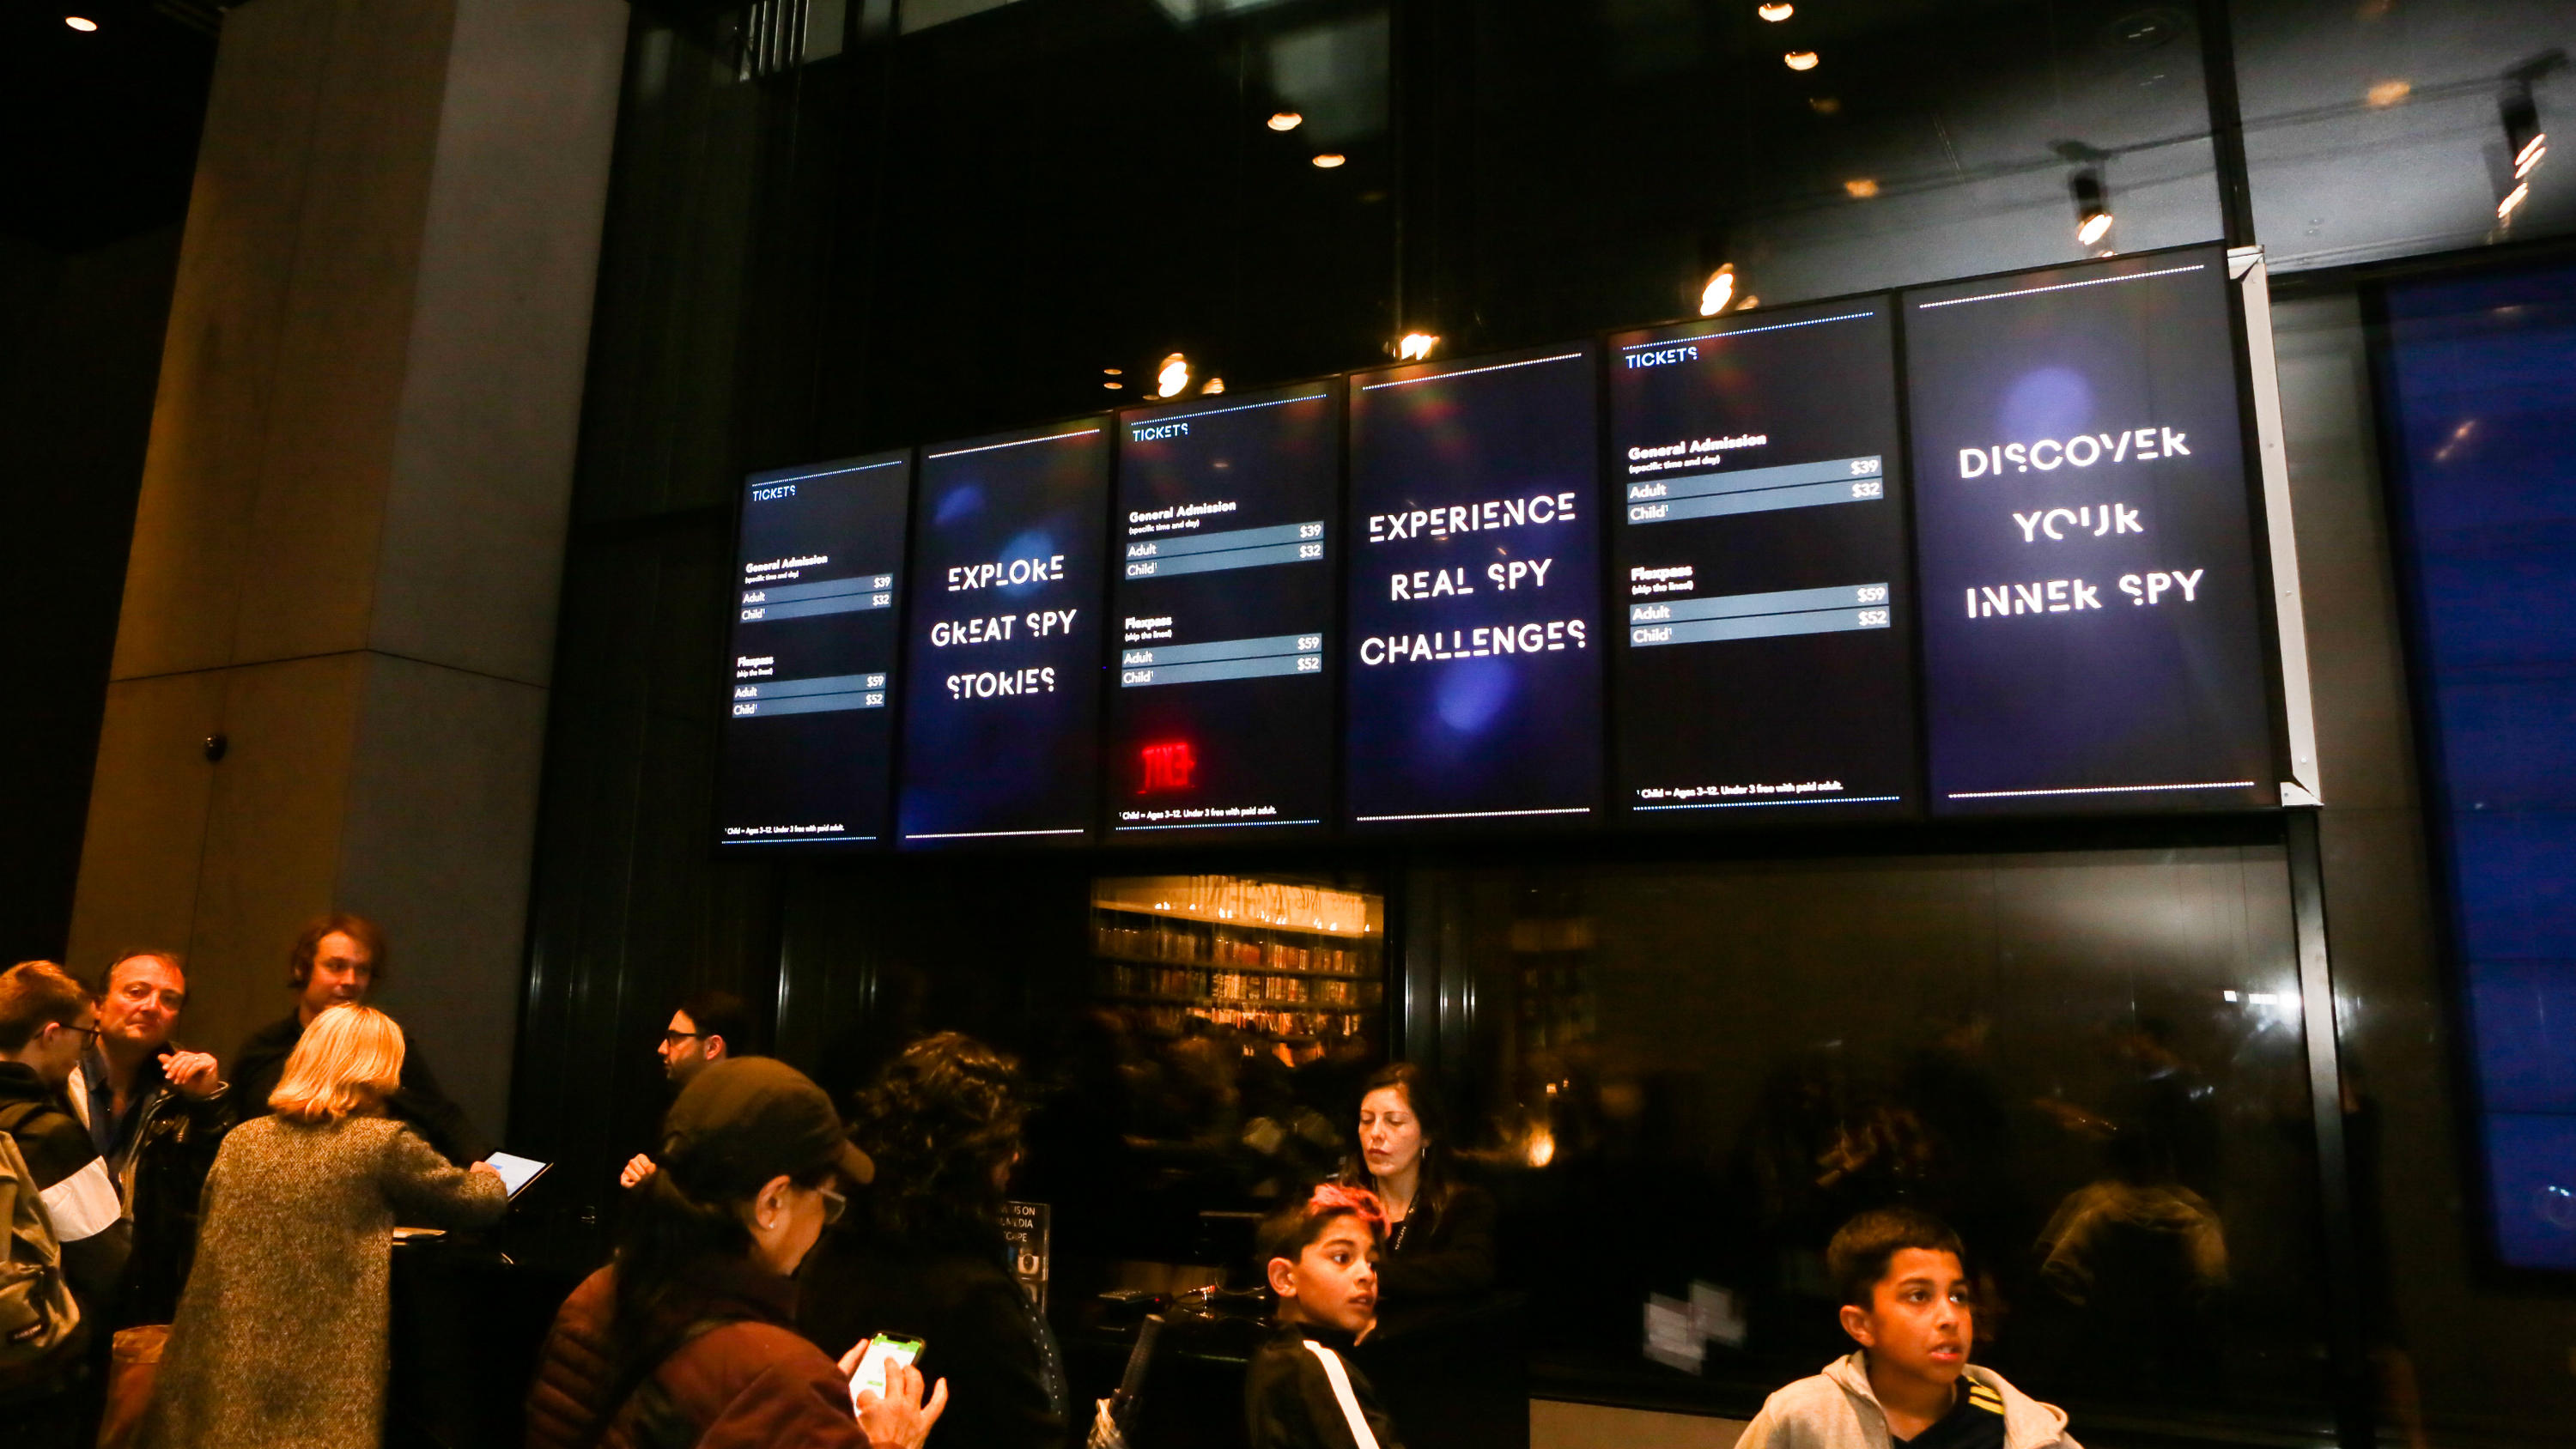 SPYSCAPE: the new museum of surveillance, encryption, hacking, and spy service lore.